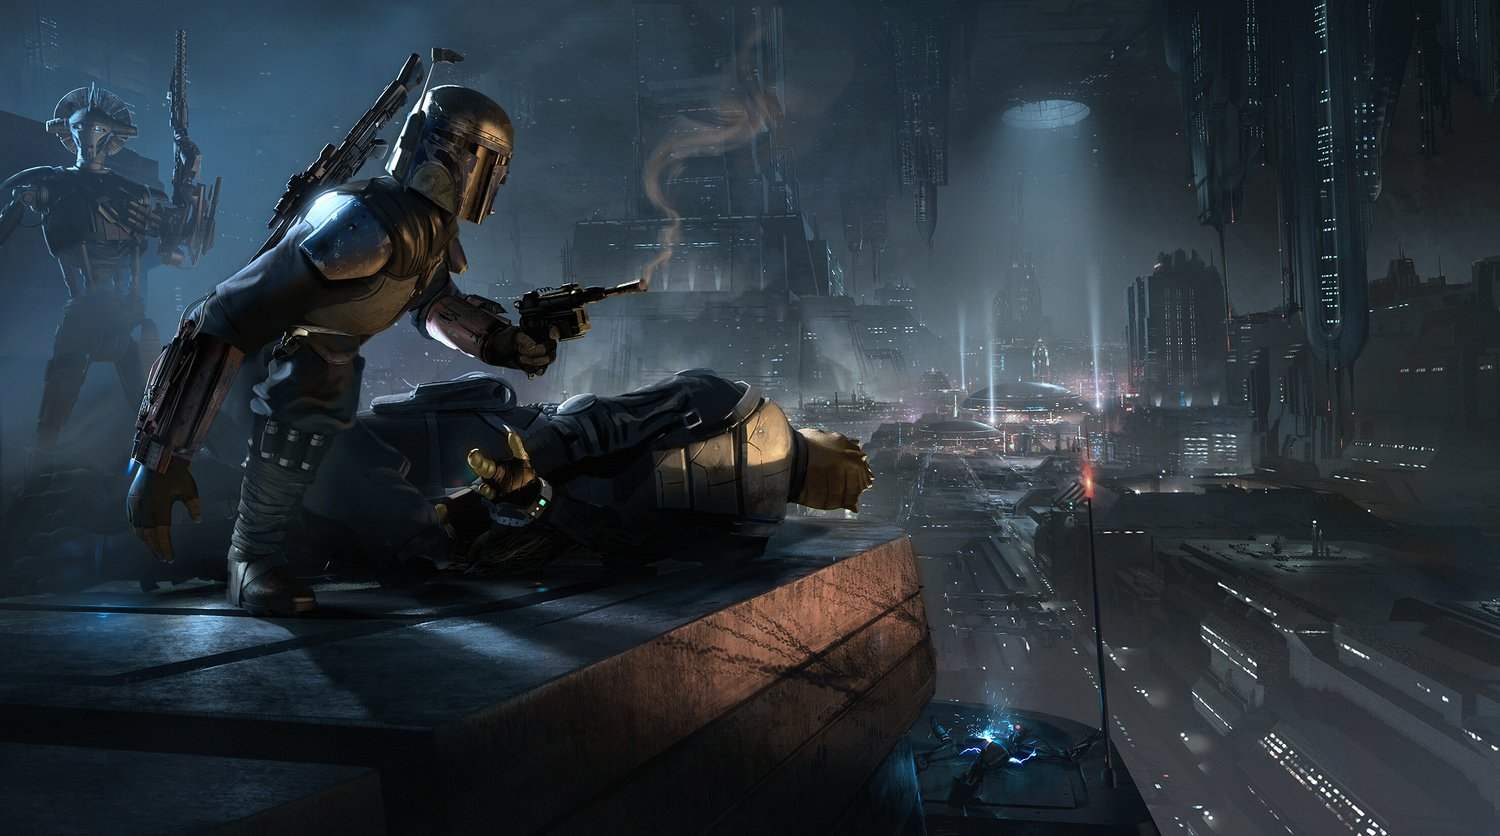 Boba Fett in concept art for Star Wars 1313.